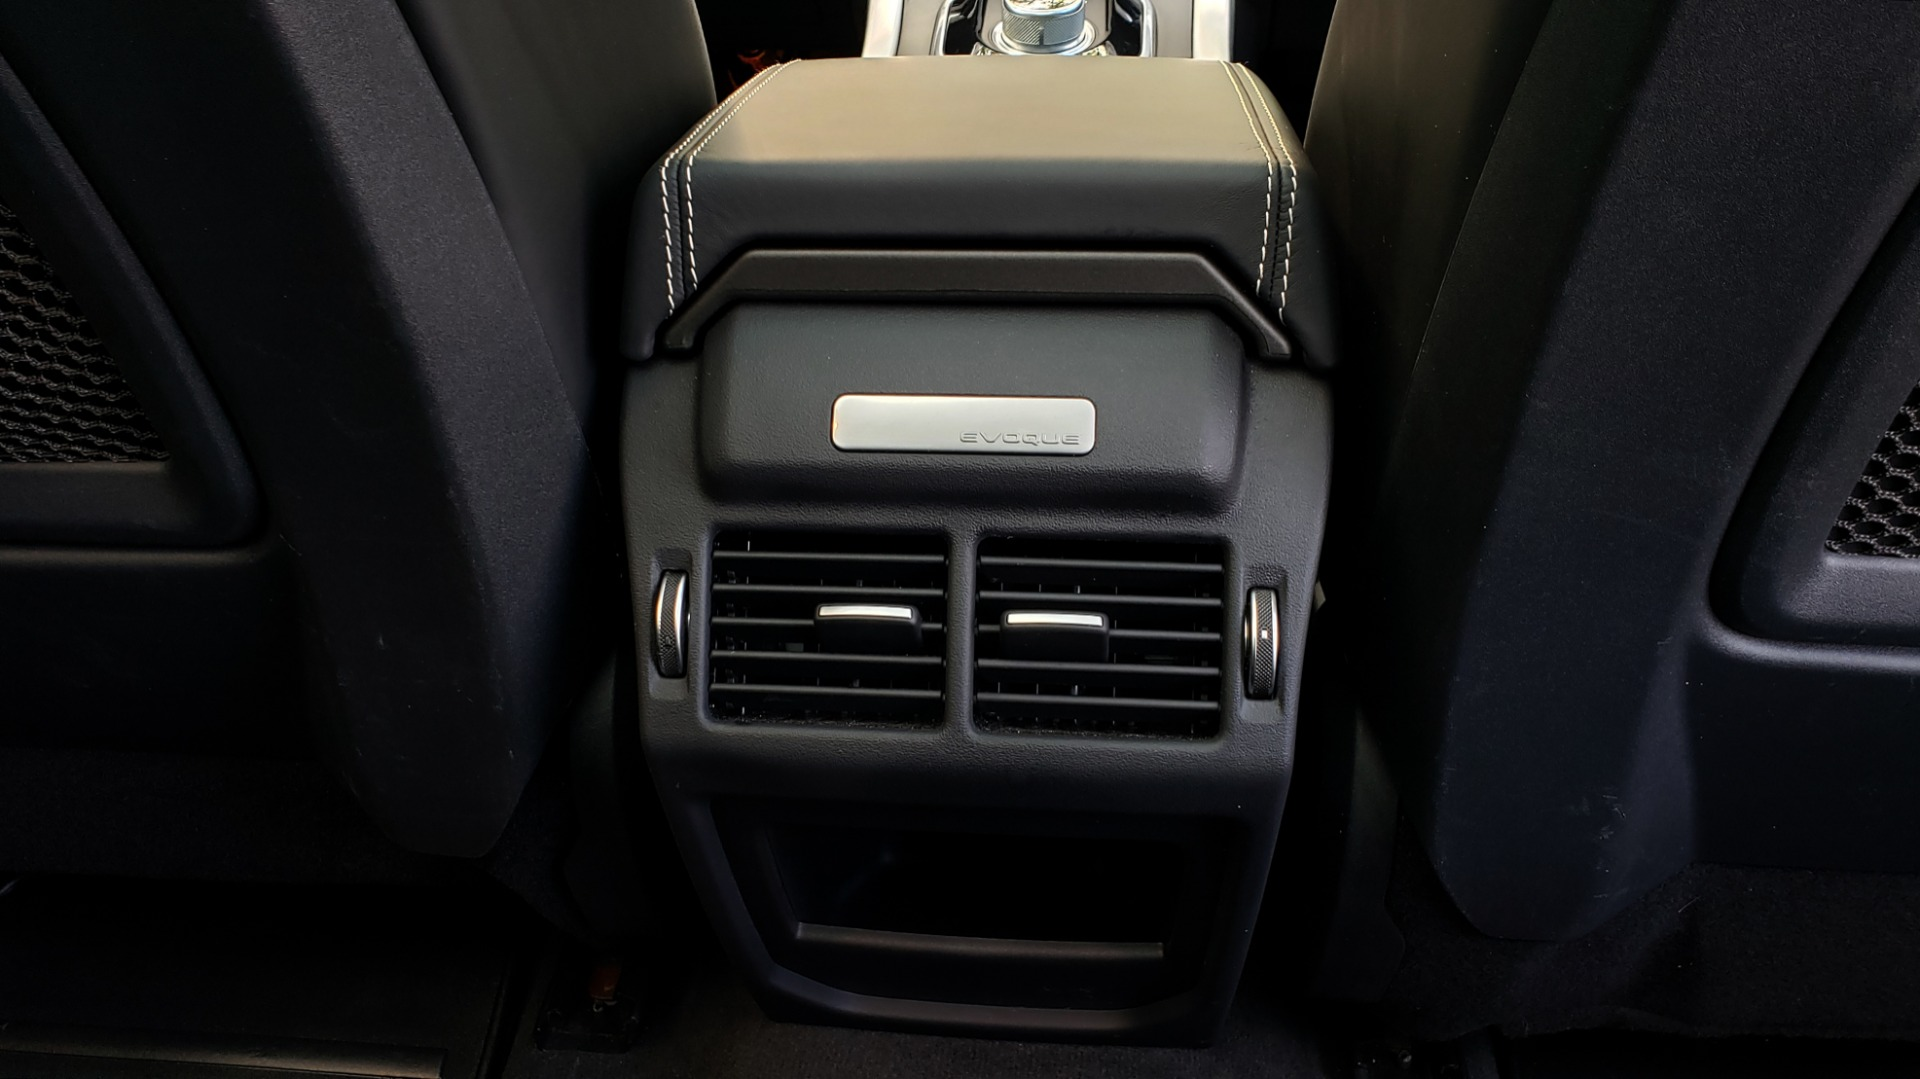 Used 2016 Land Rover RANGE ROVER EVOQUE HSE / AWD / NAV / MERIDIAN / PANO-ROOF / REARVIEW for sale Sold at Formula Imports in Charlotte NC 28227 76